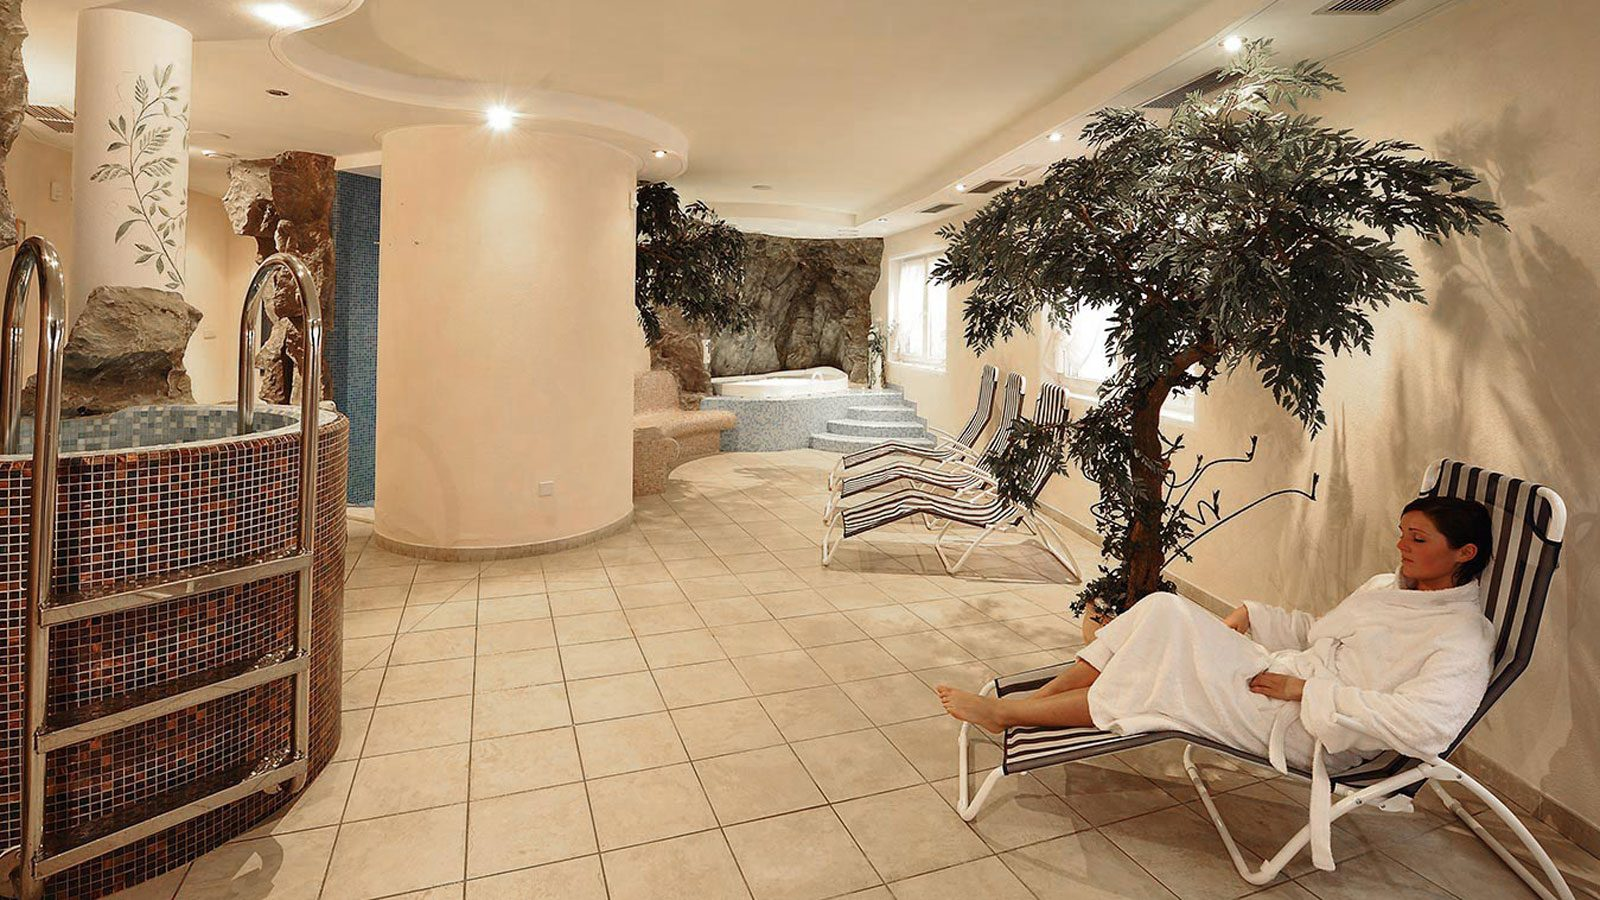 a lady resting on a lounger in the relaxation zone of the wellness area of the Hotel Tyrol in Gsies